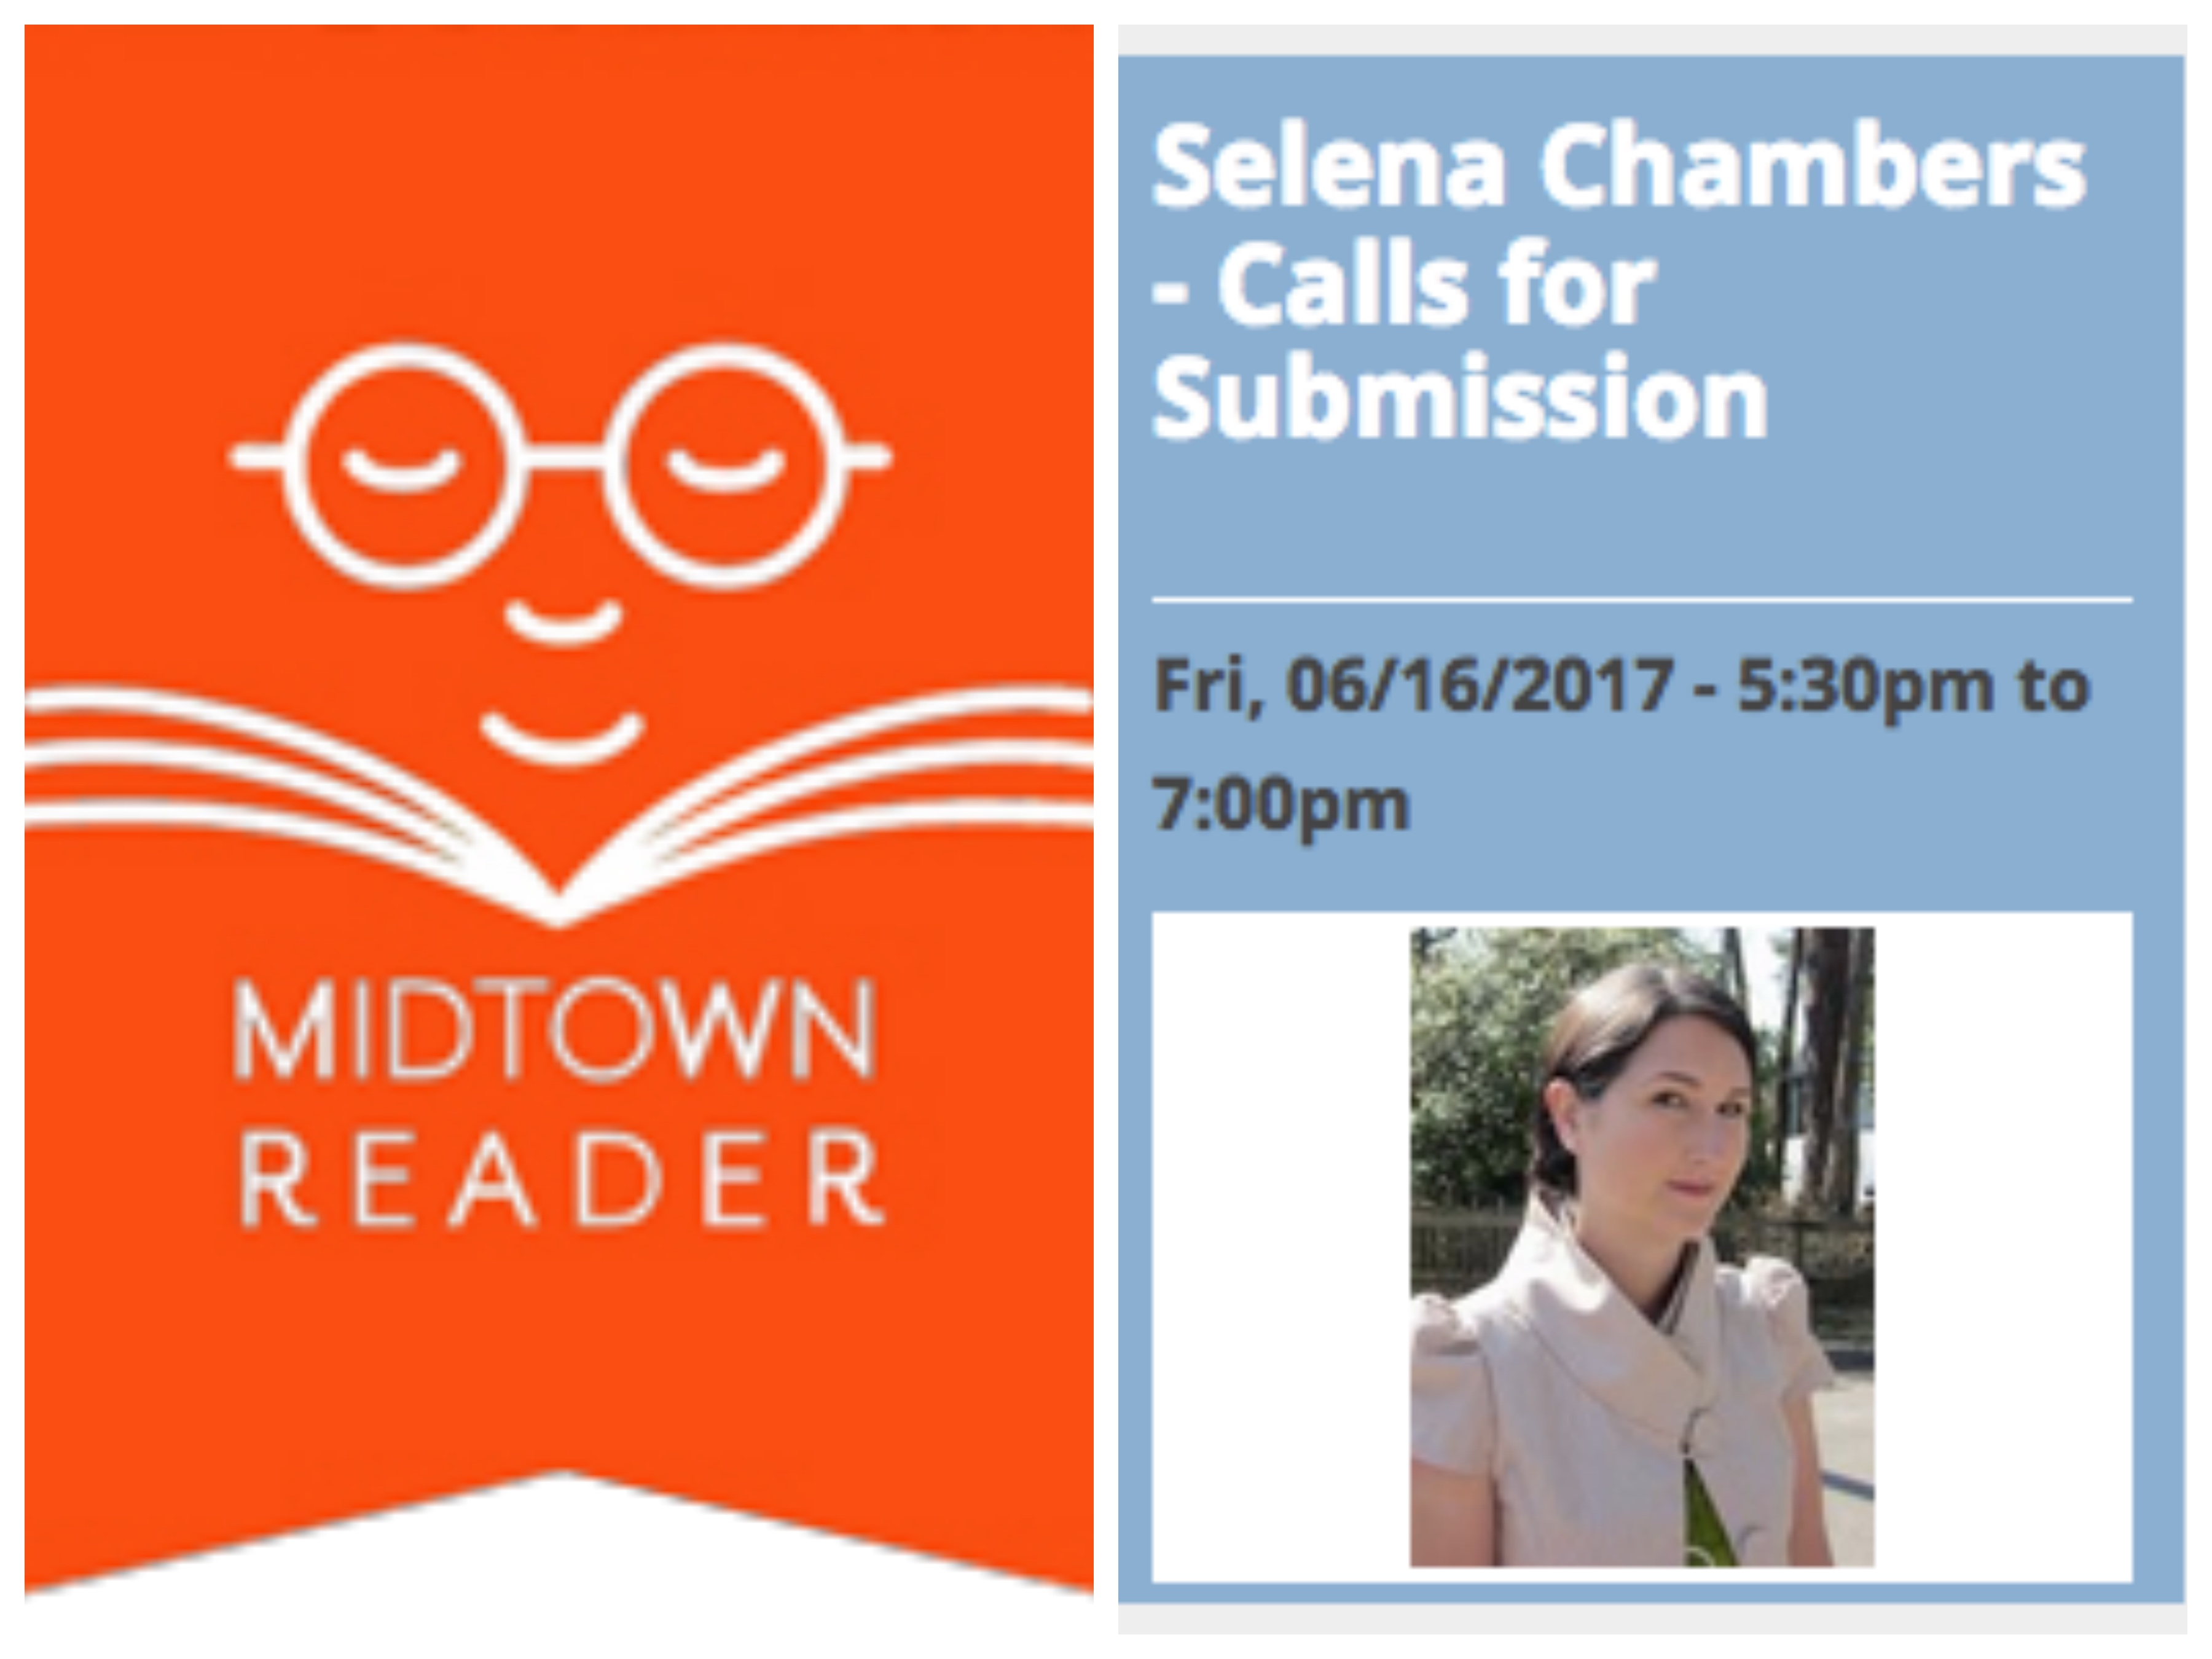 Appearances Book Release Party At Midtown Reader Selena Chambers